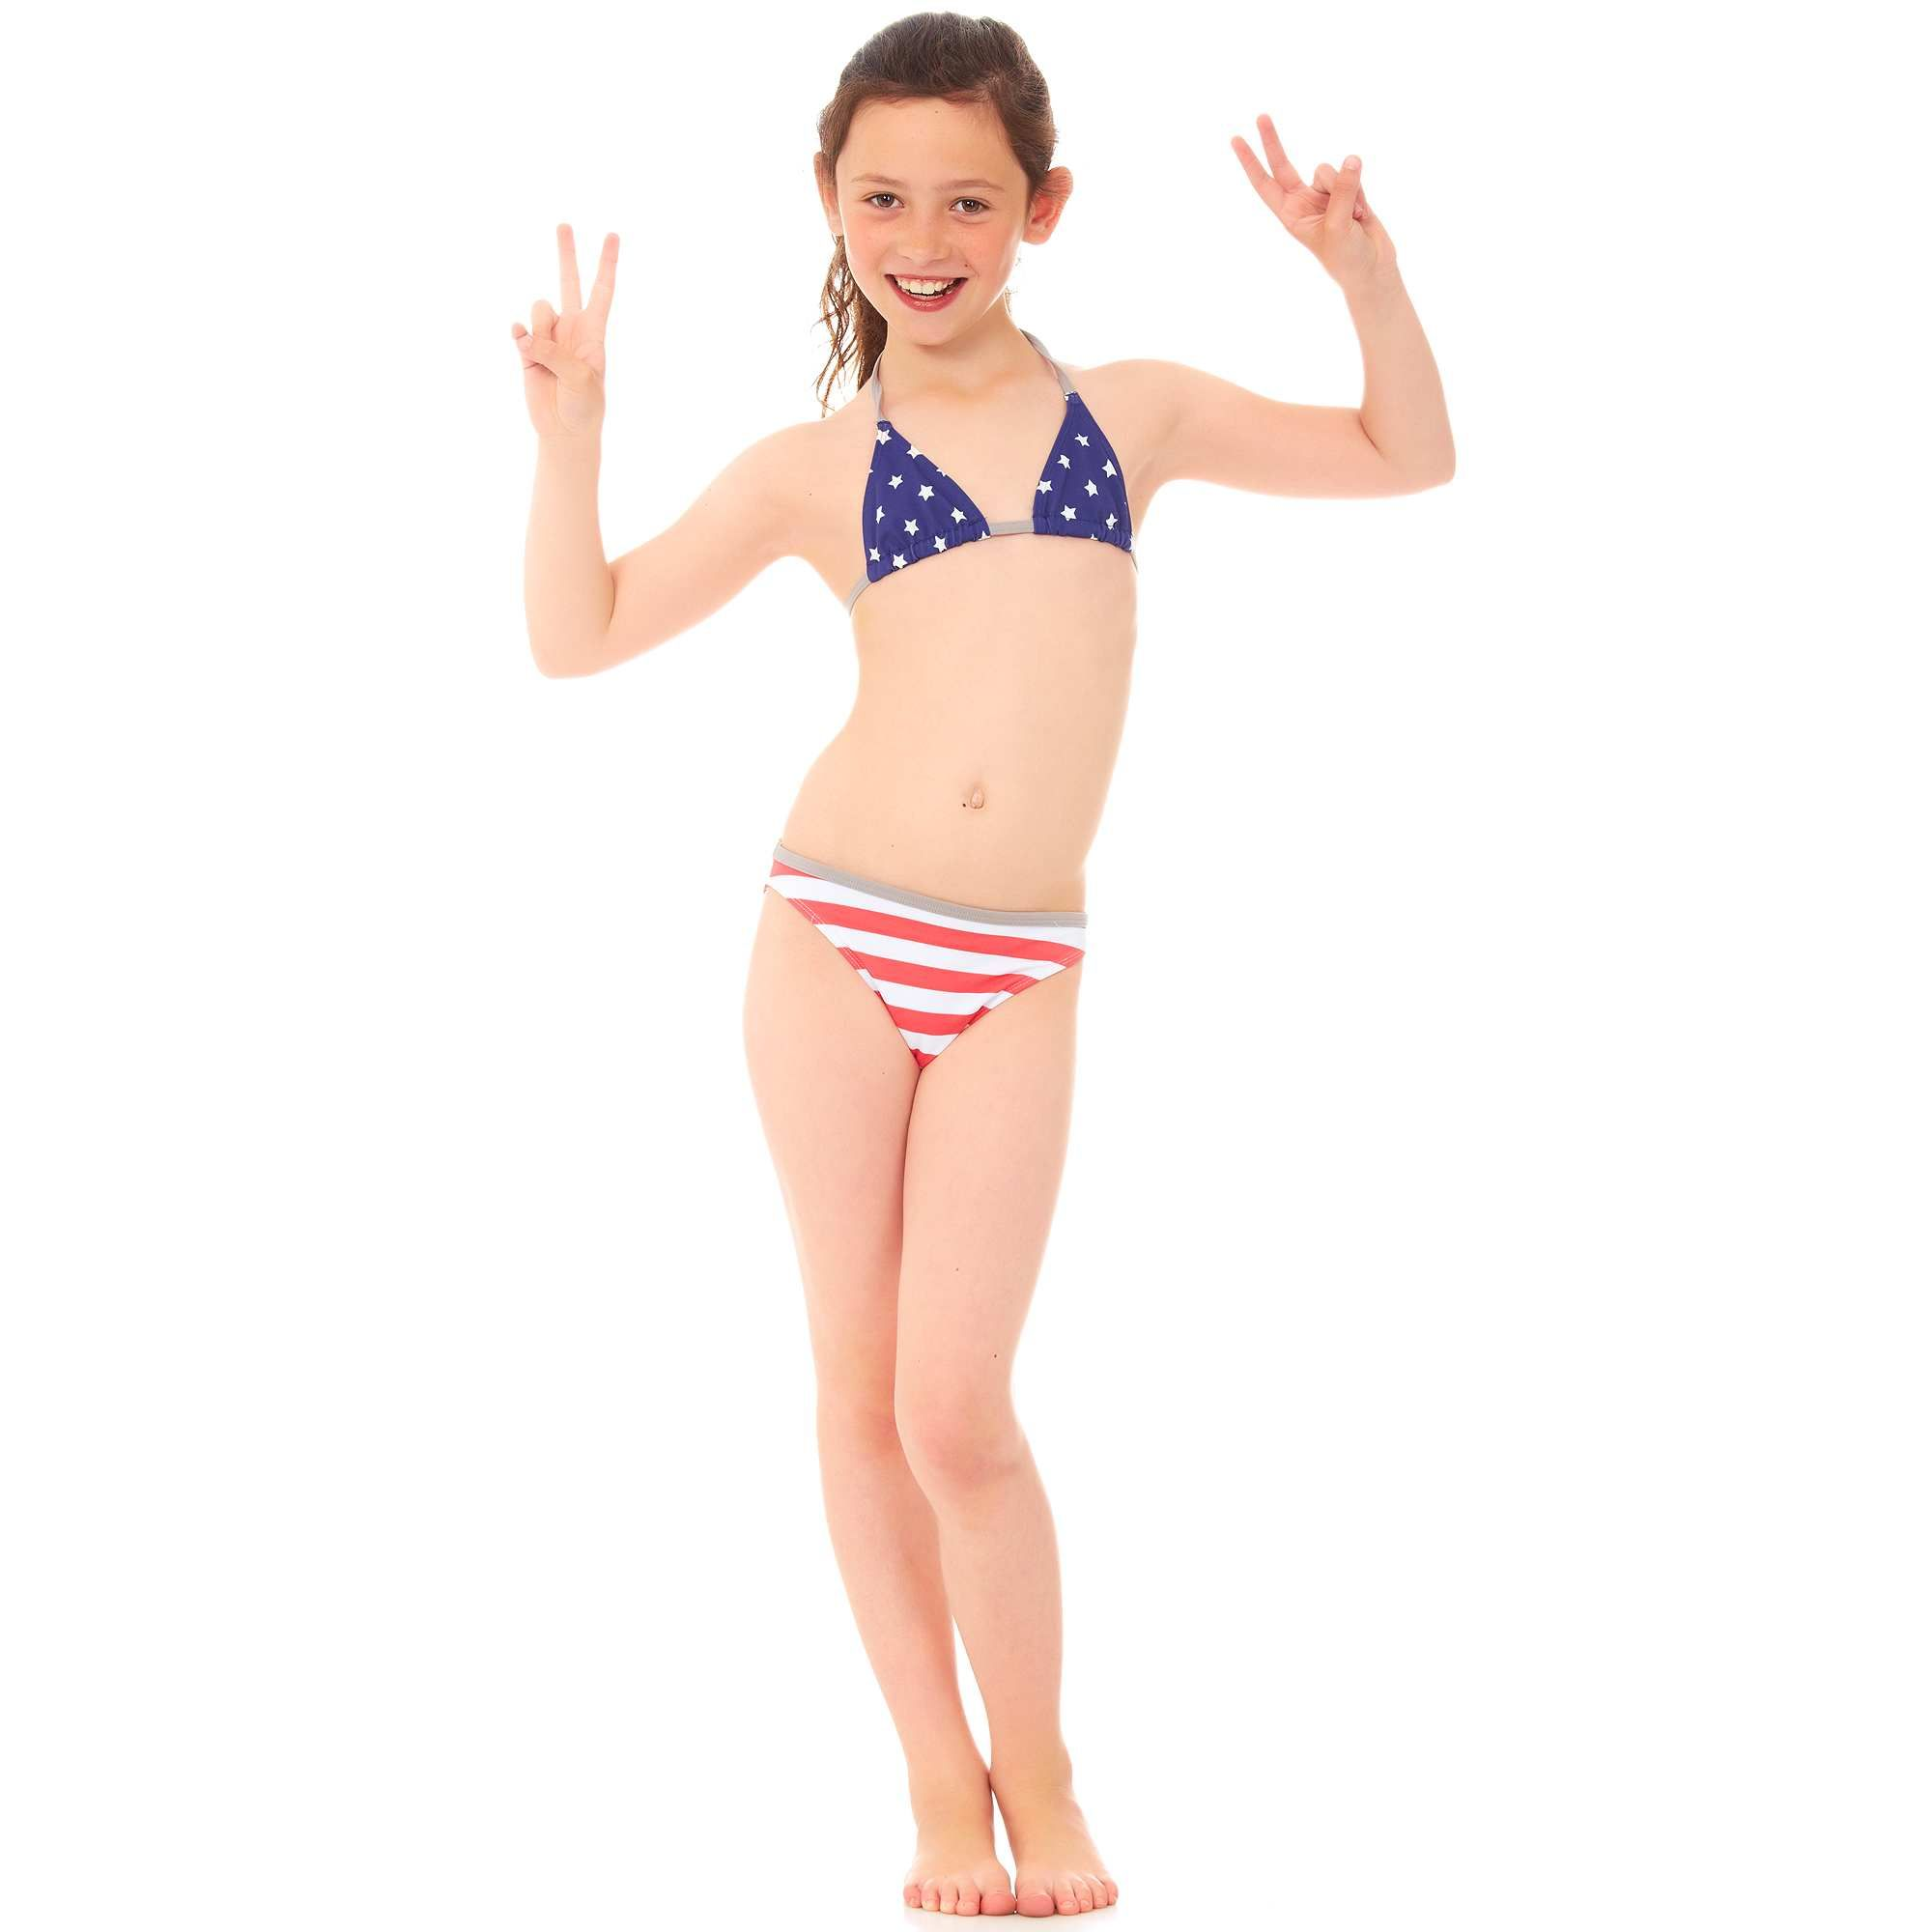 6a86f94c19 Little Girl Models, Little Girls, 2 Piece Swimsuits, Usa Girls, Barefoot,